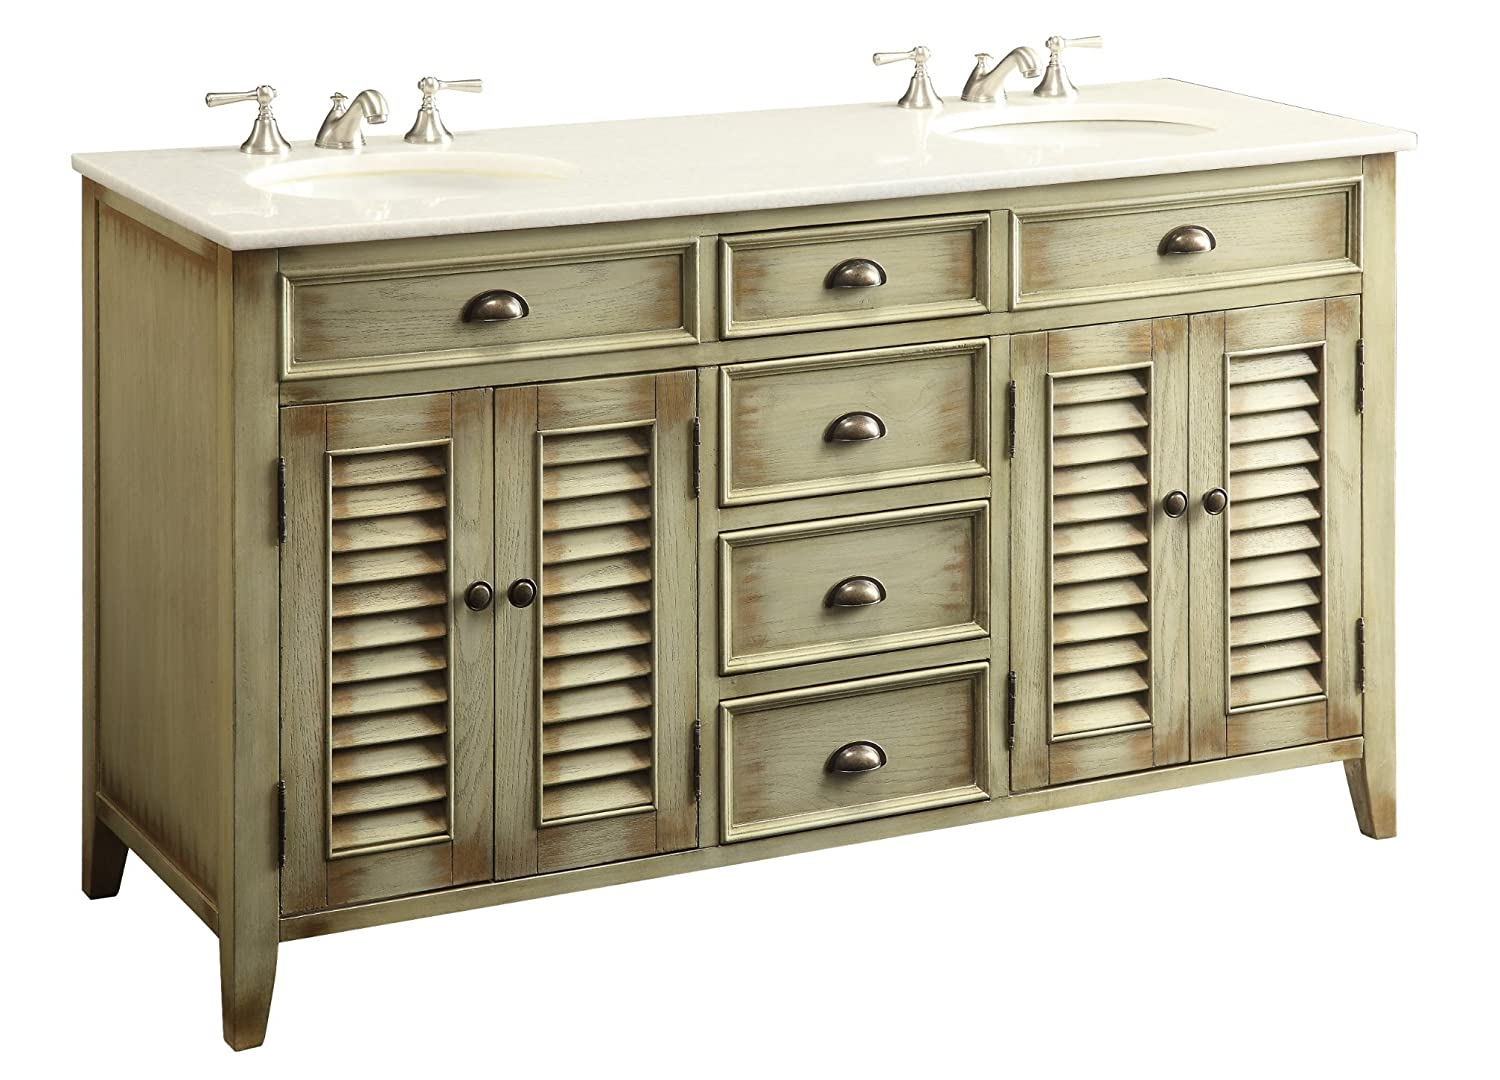 Cottage Look Abbeville Double Sink Bathroom Vanity Model